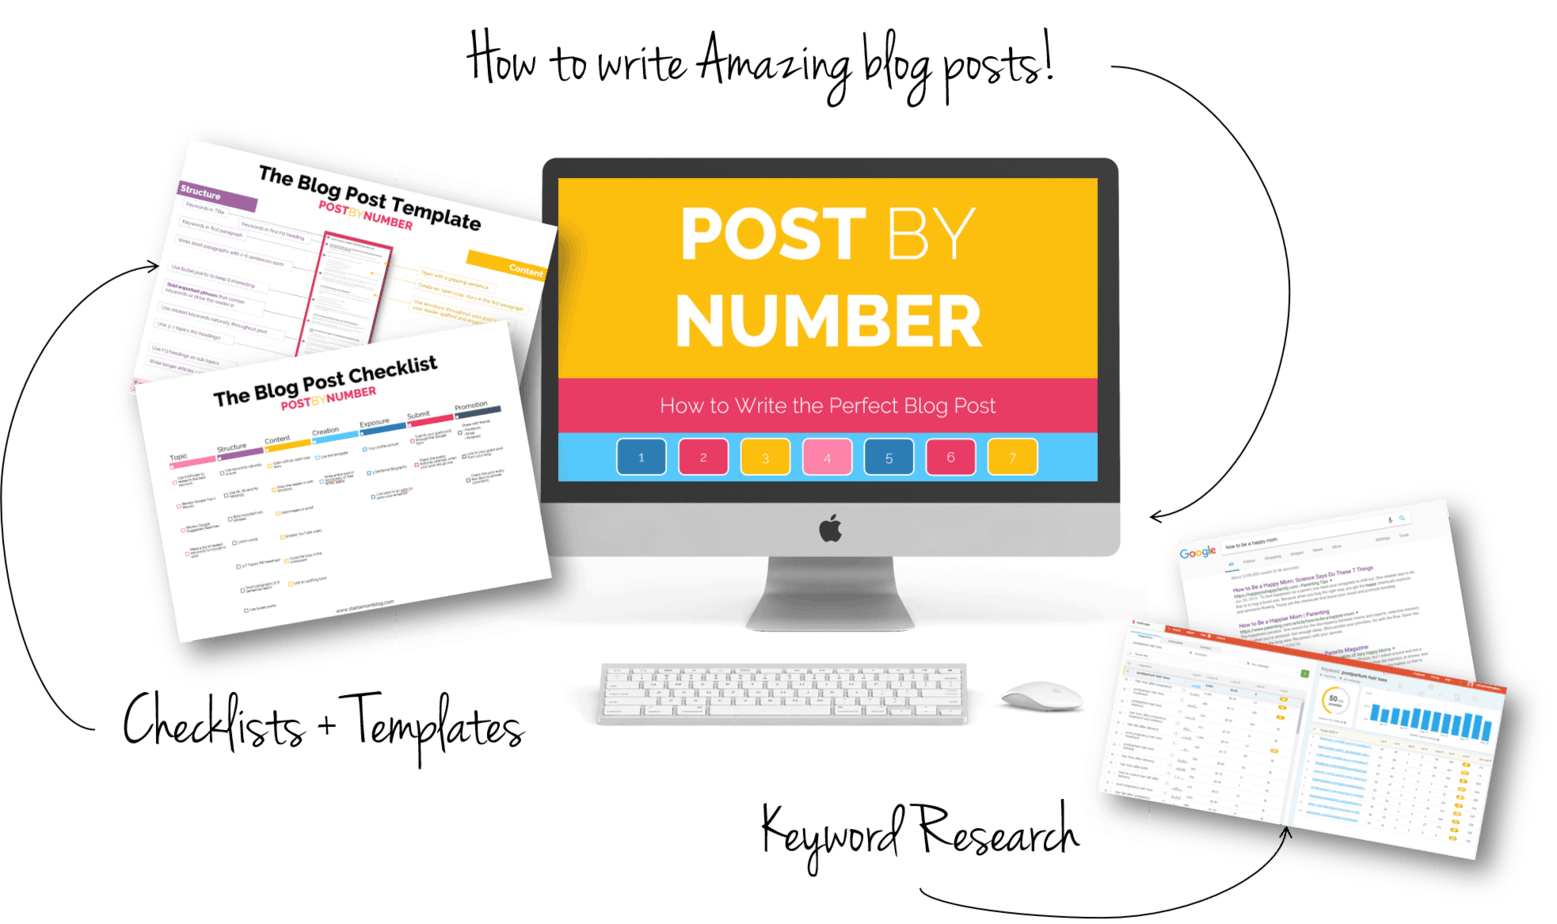 Post by Number course for writing the best blog post